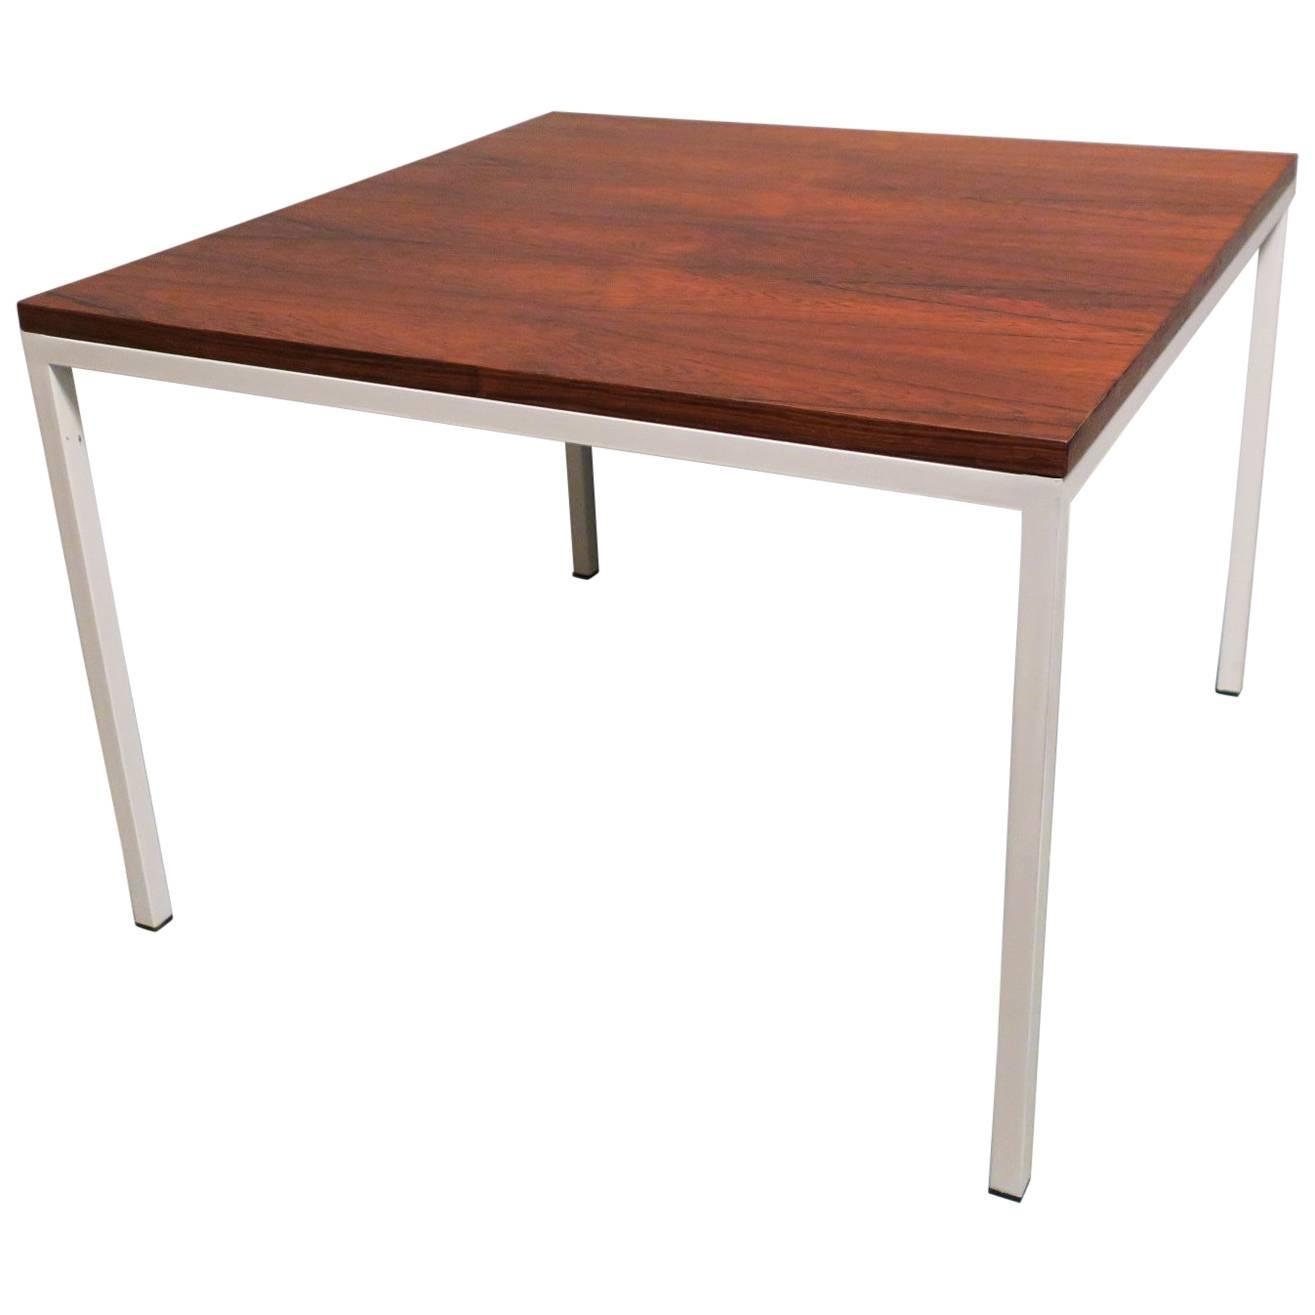 Modernist Rosewood Square Coffee Table With Metal Legs For Sale At 1stdibs